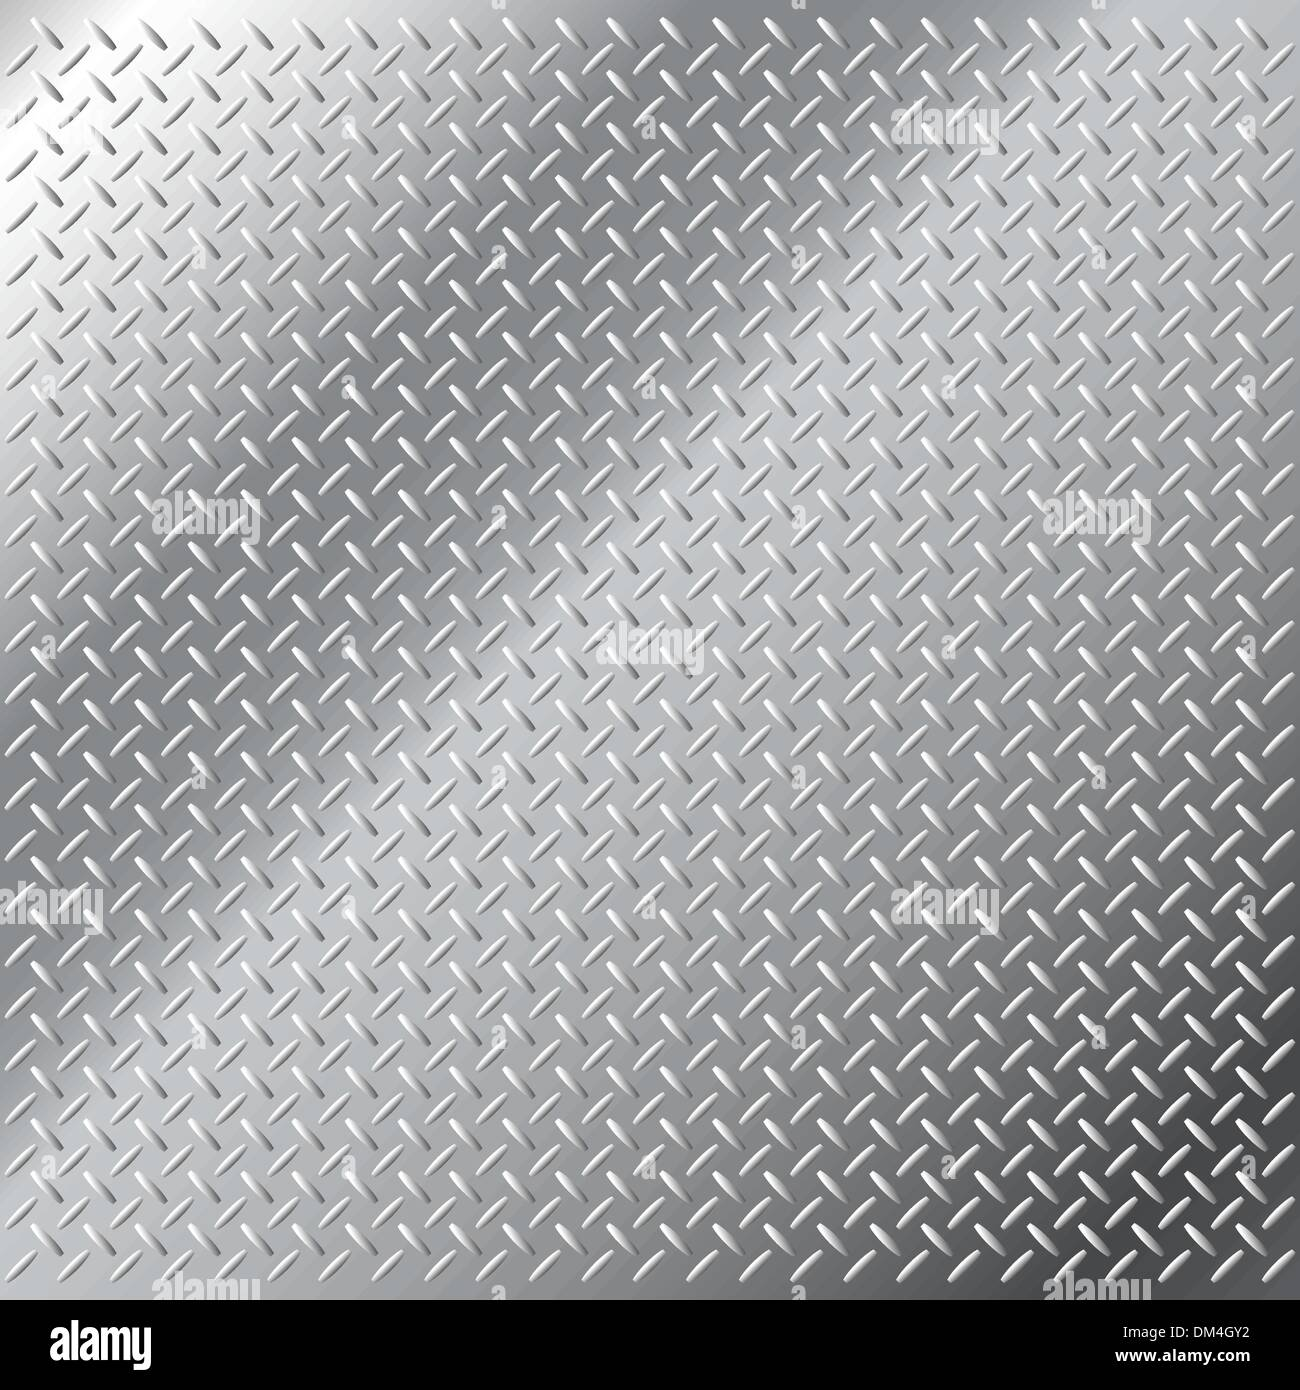 Stainless Steel Diamond Hatch Pattern Vector Metal